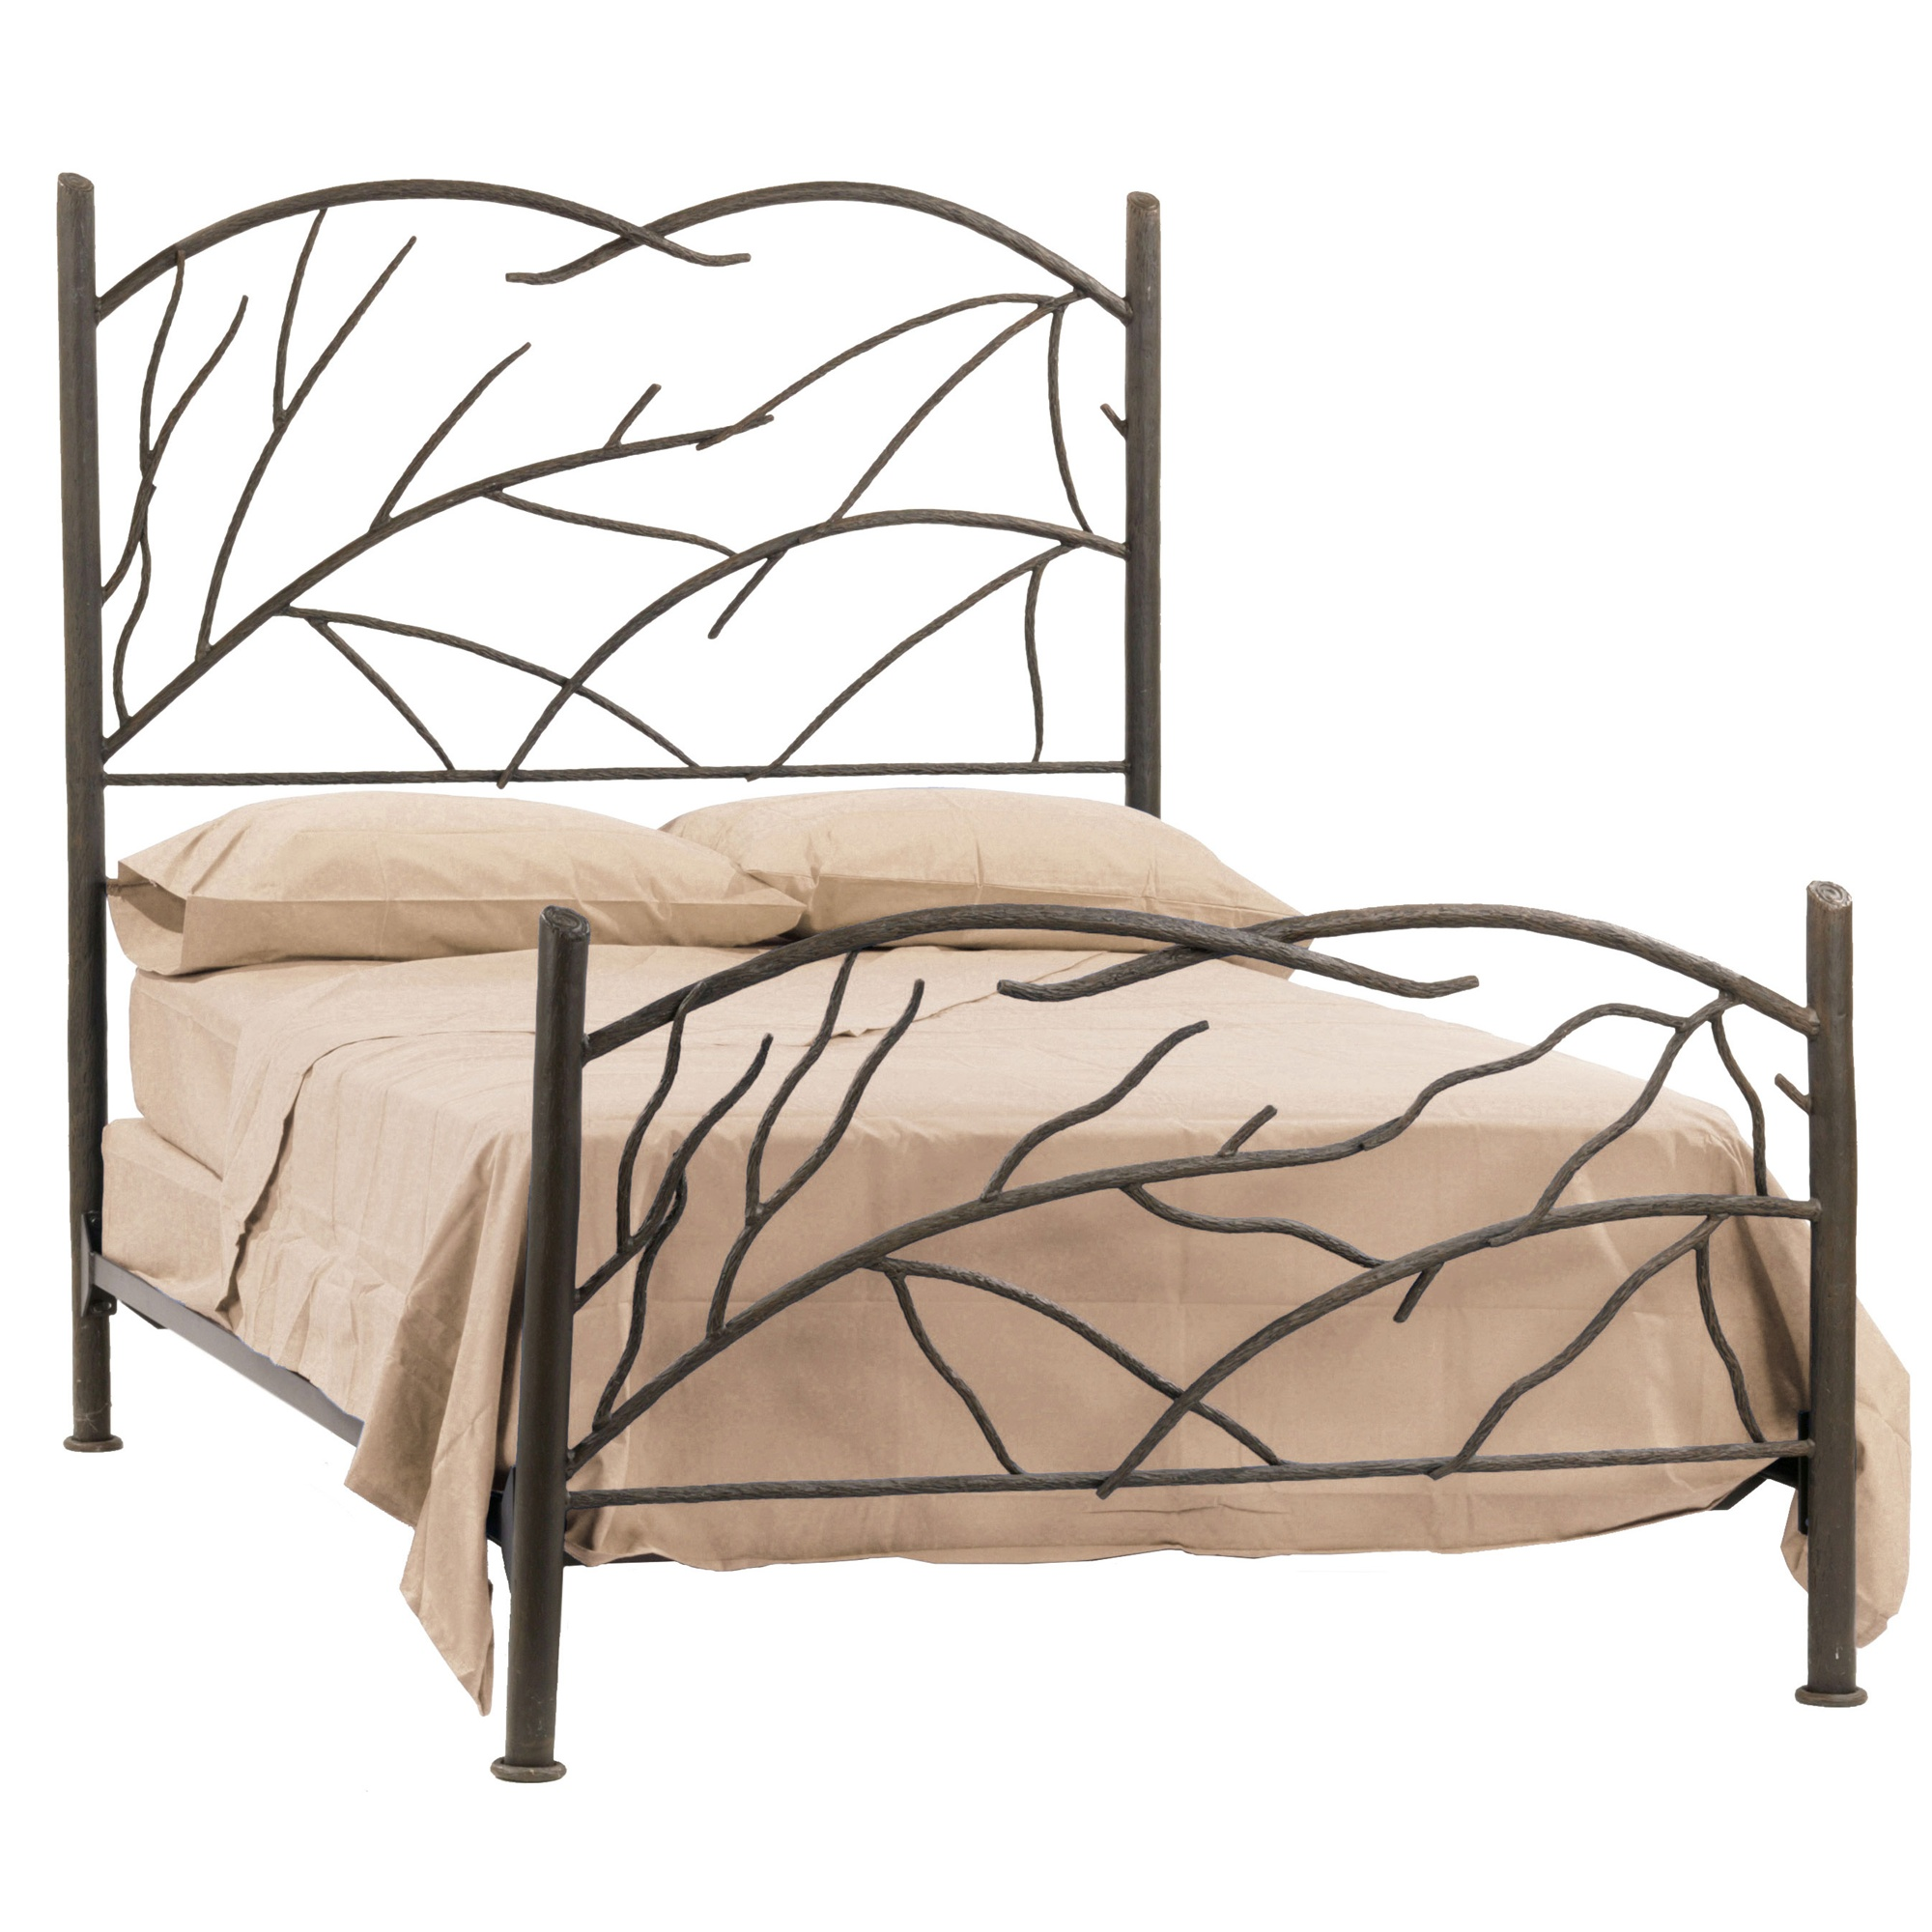 Wrought iron norfork bed by stone county ironworks Wrought iron headboard